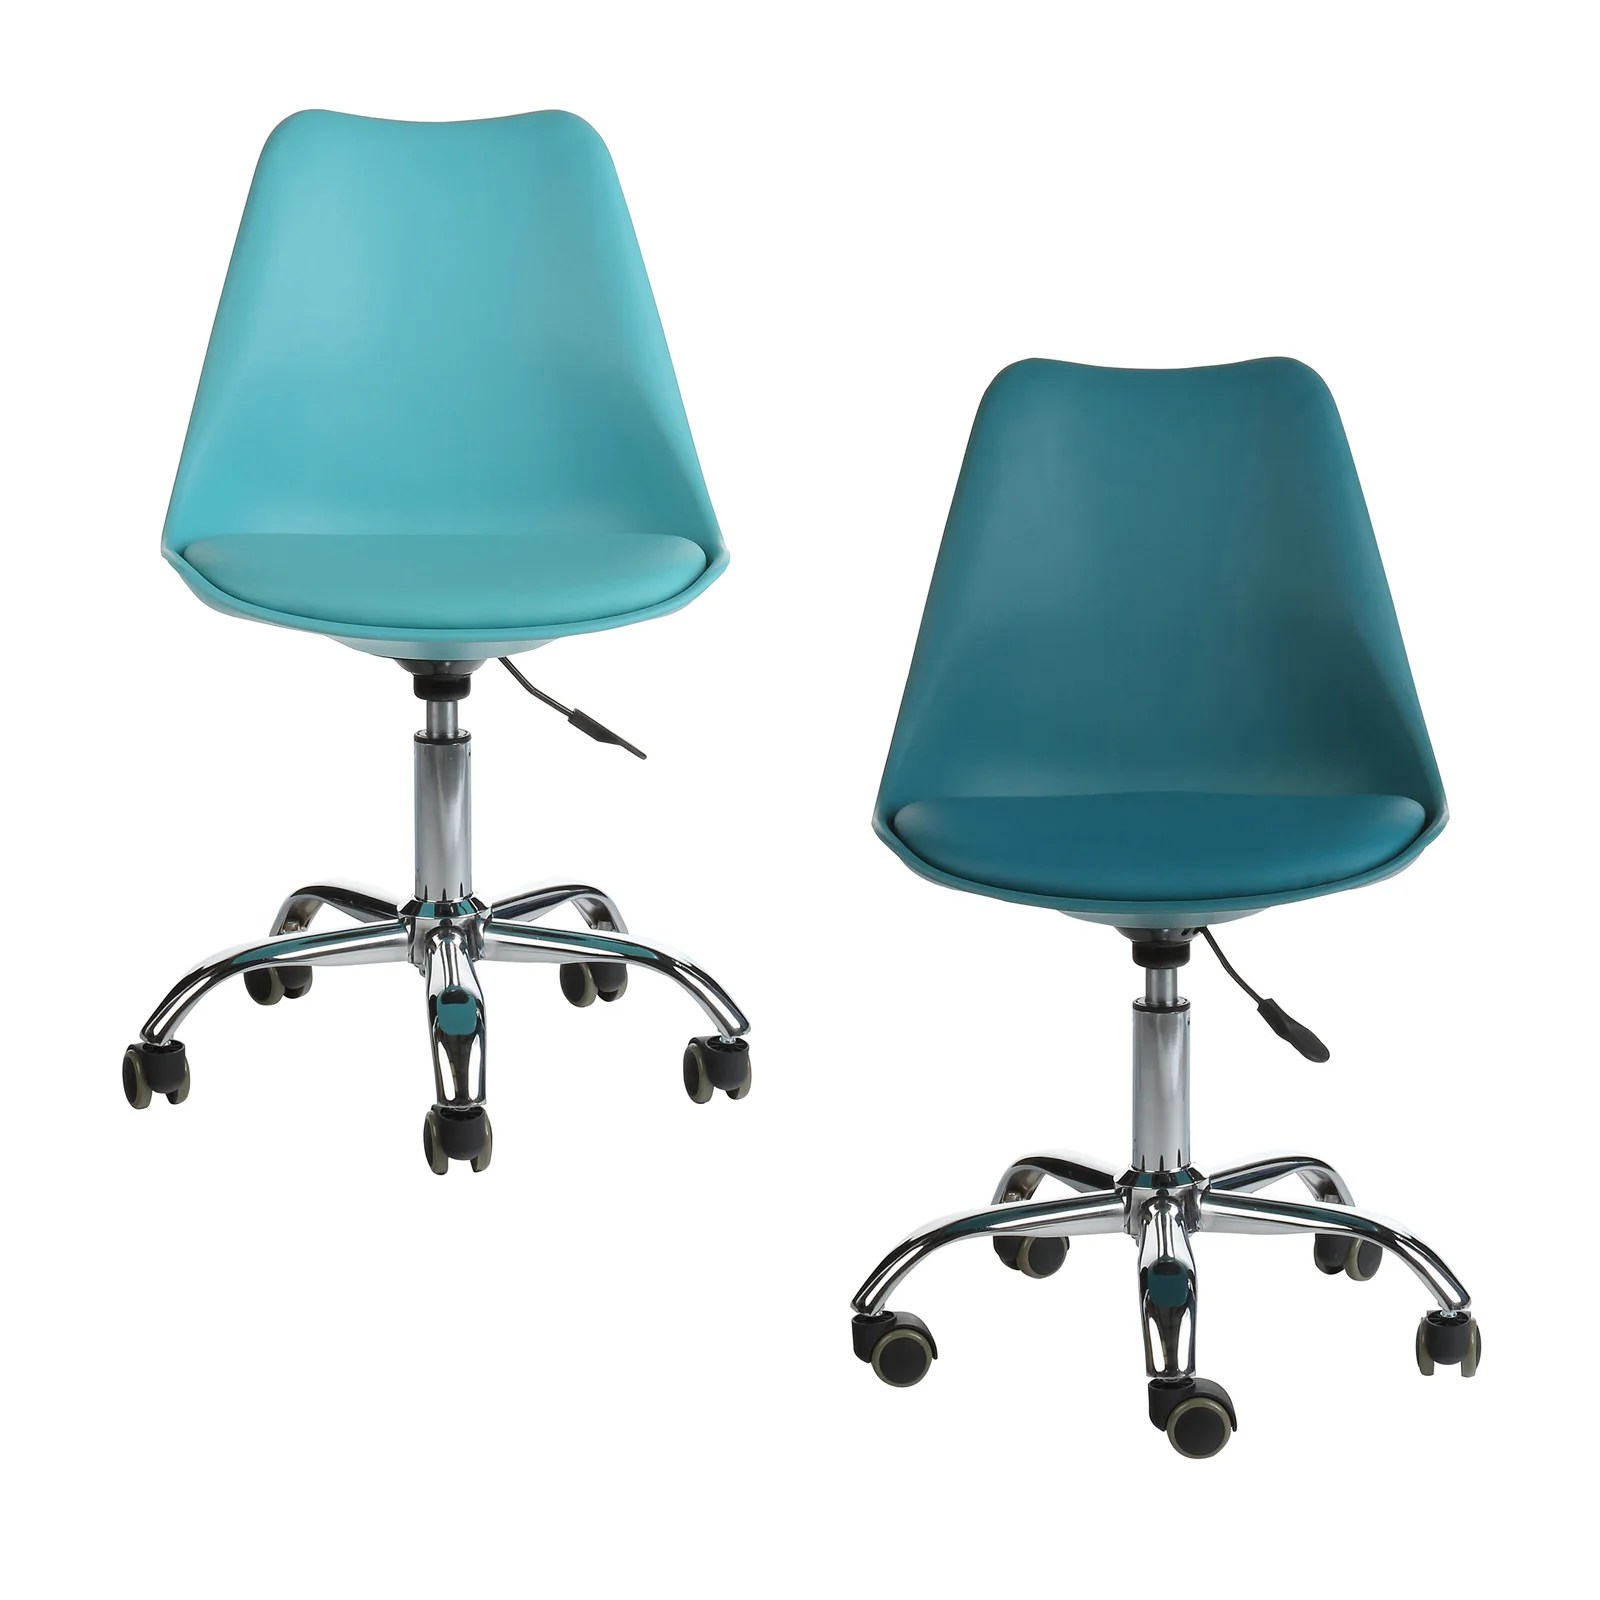 Mid Century Modern Office Chair Shop Mid Century Modern Teal Leather Office Task Chair